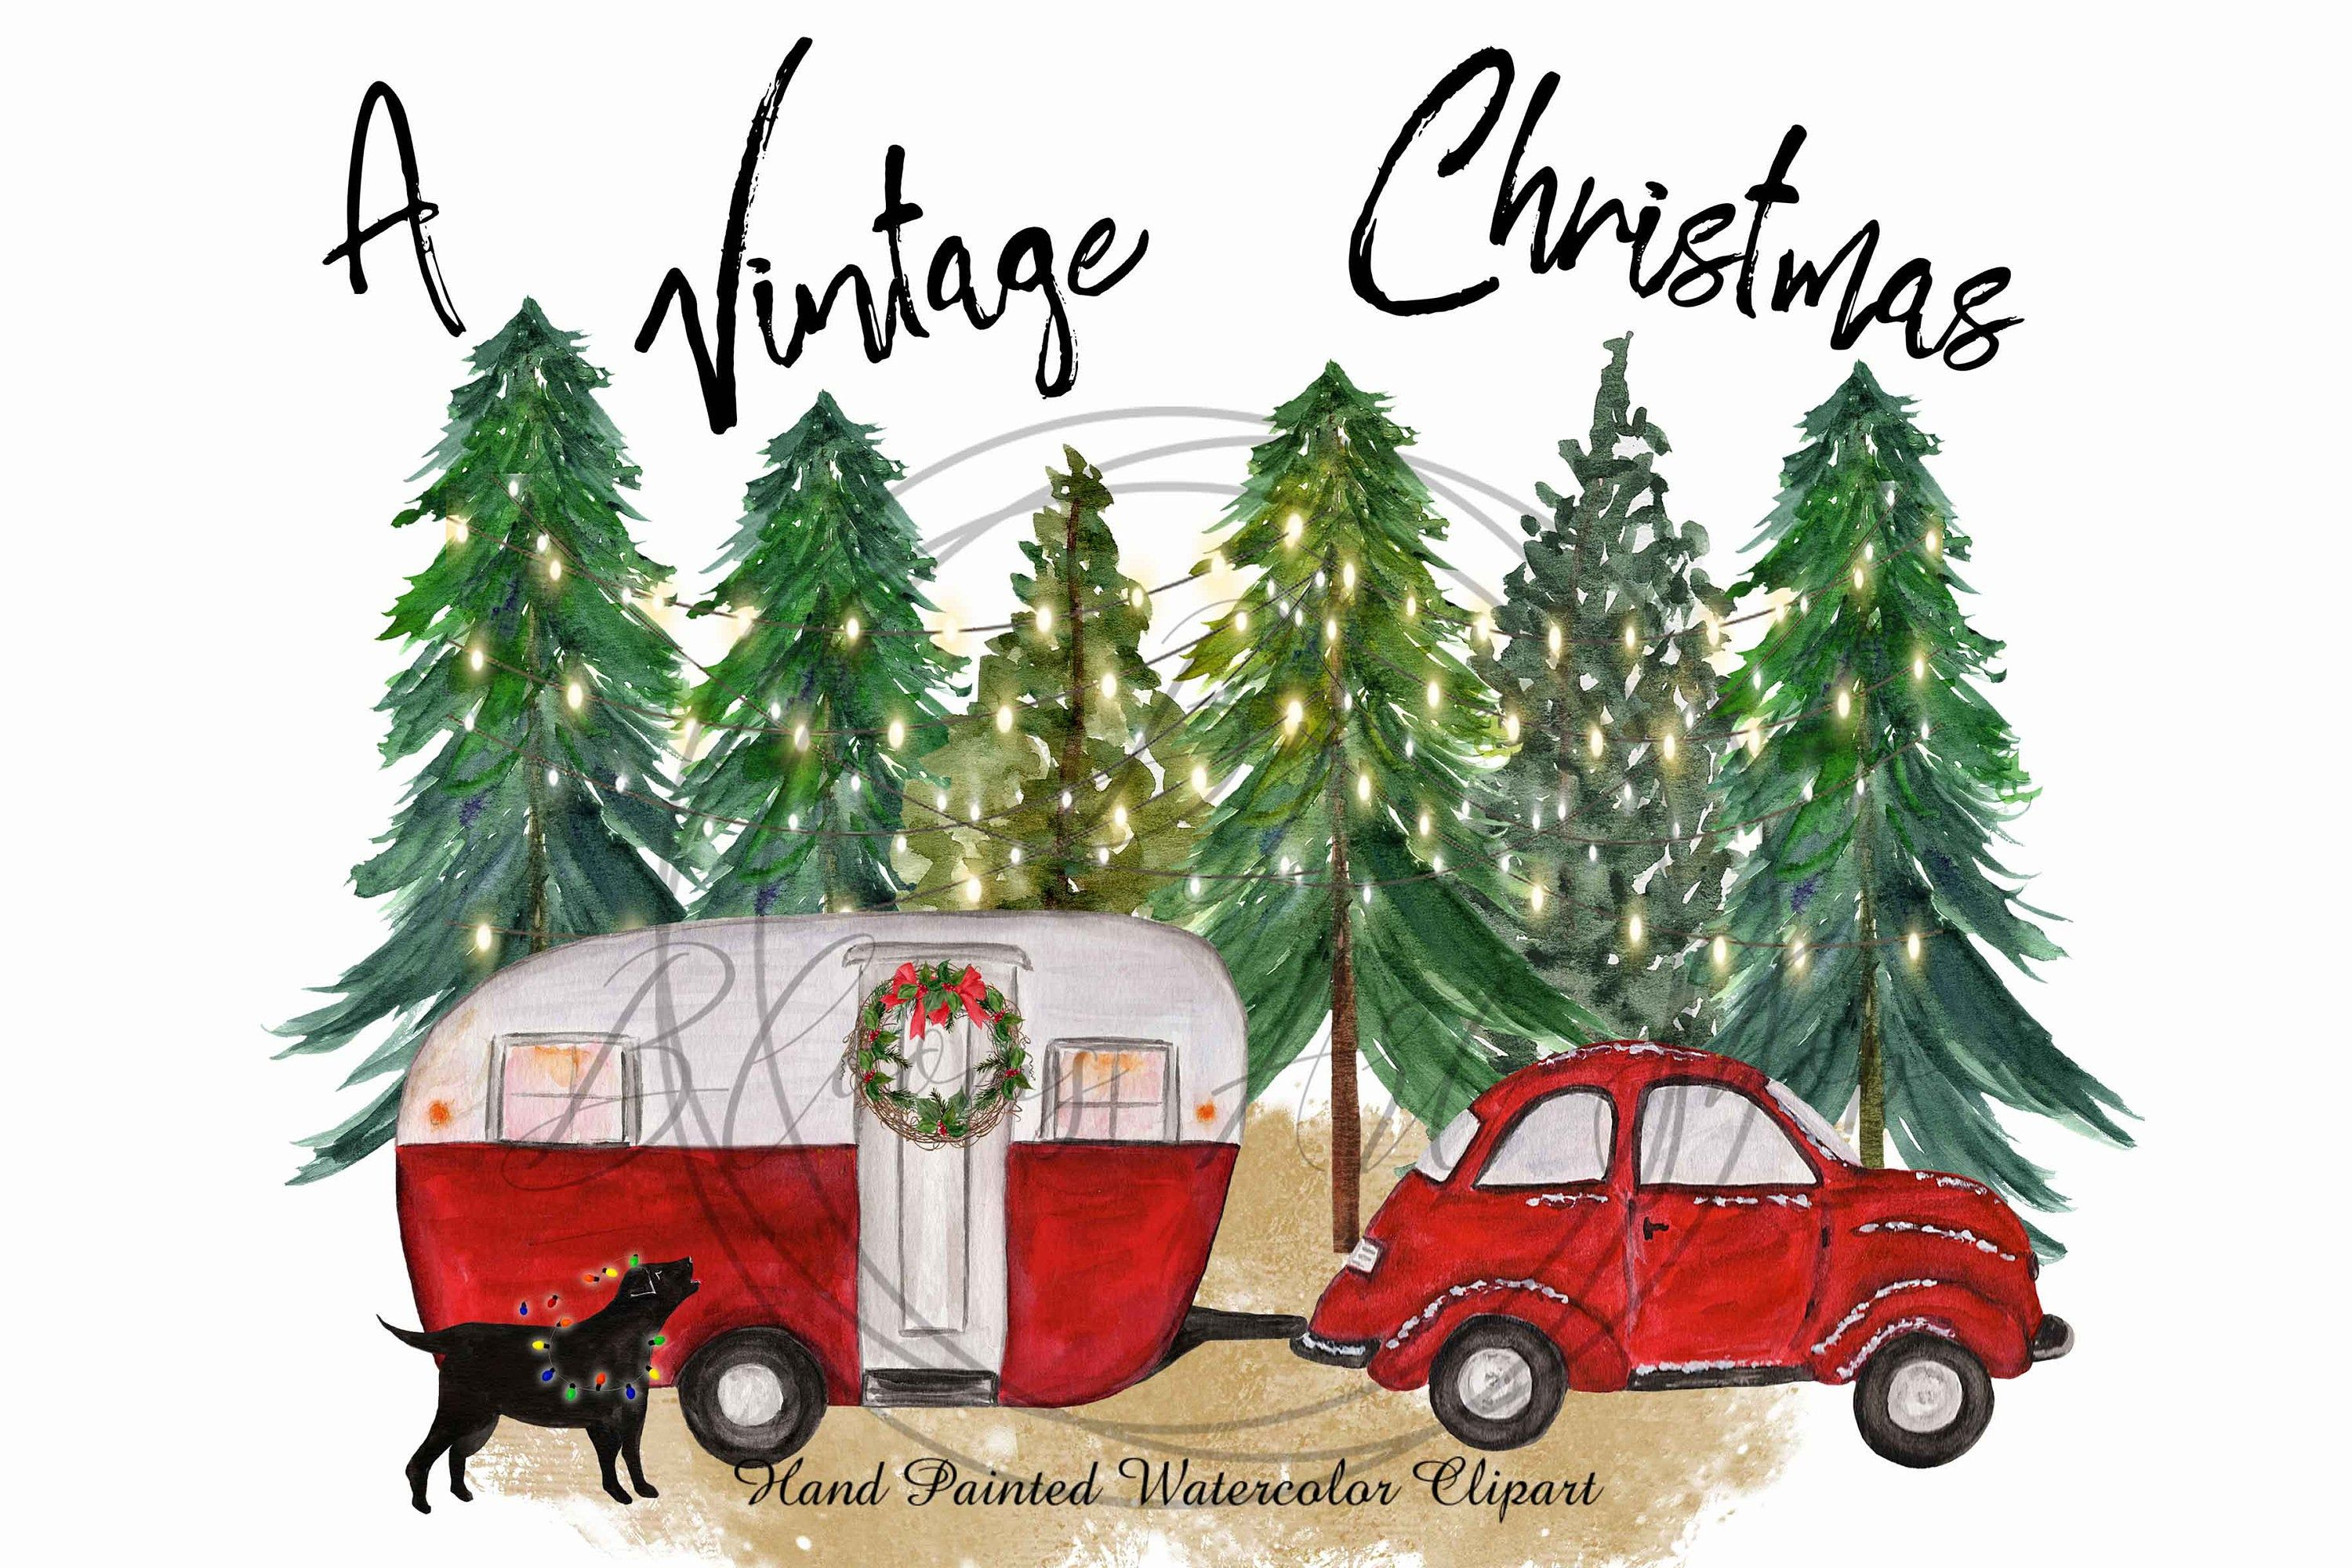 Pin By Rich On Card Ideas In 2021 Vintage Camper Retro Cars Christmas Prints